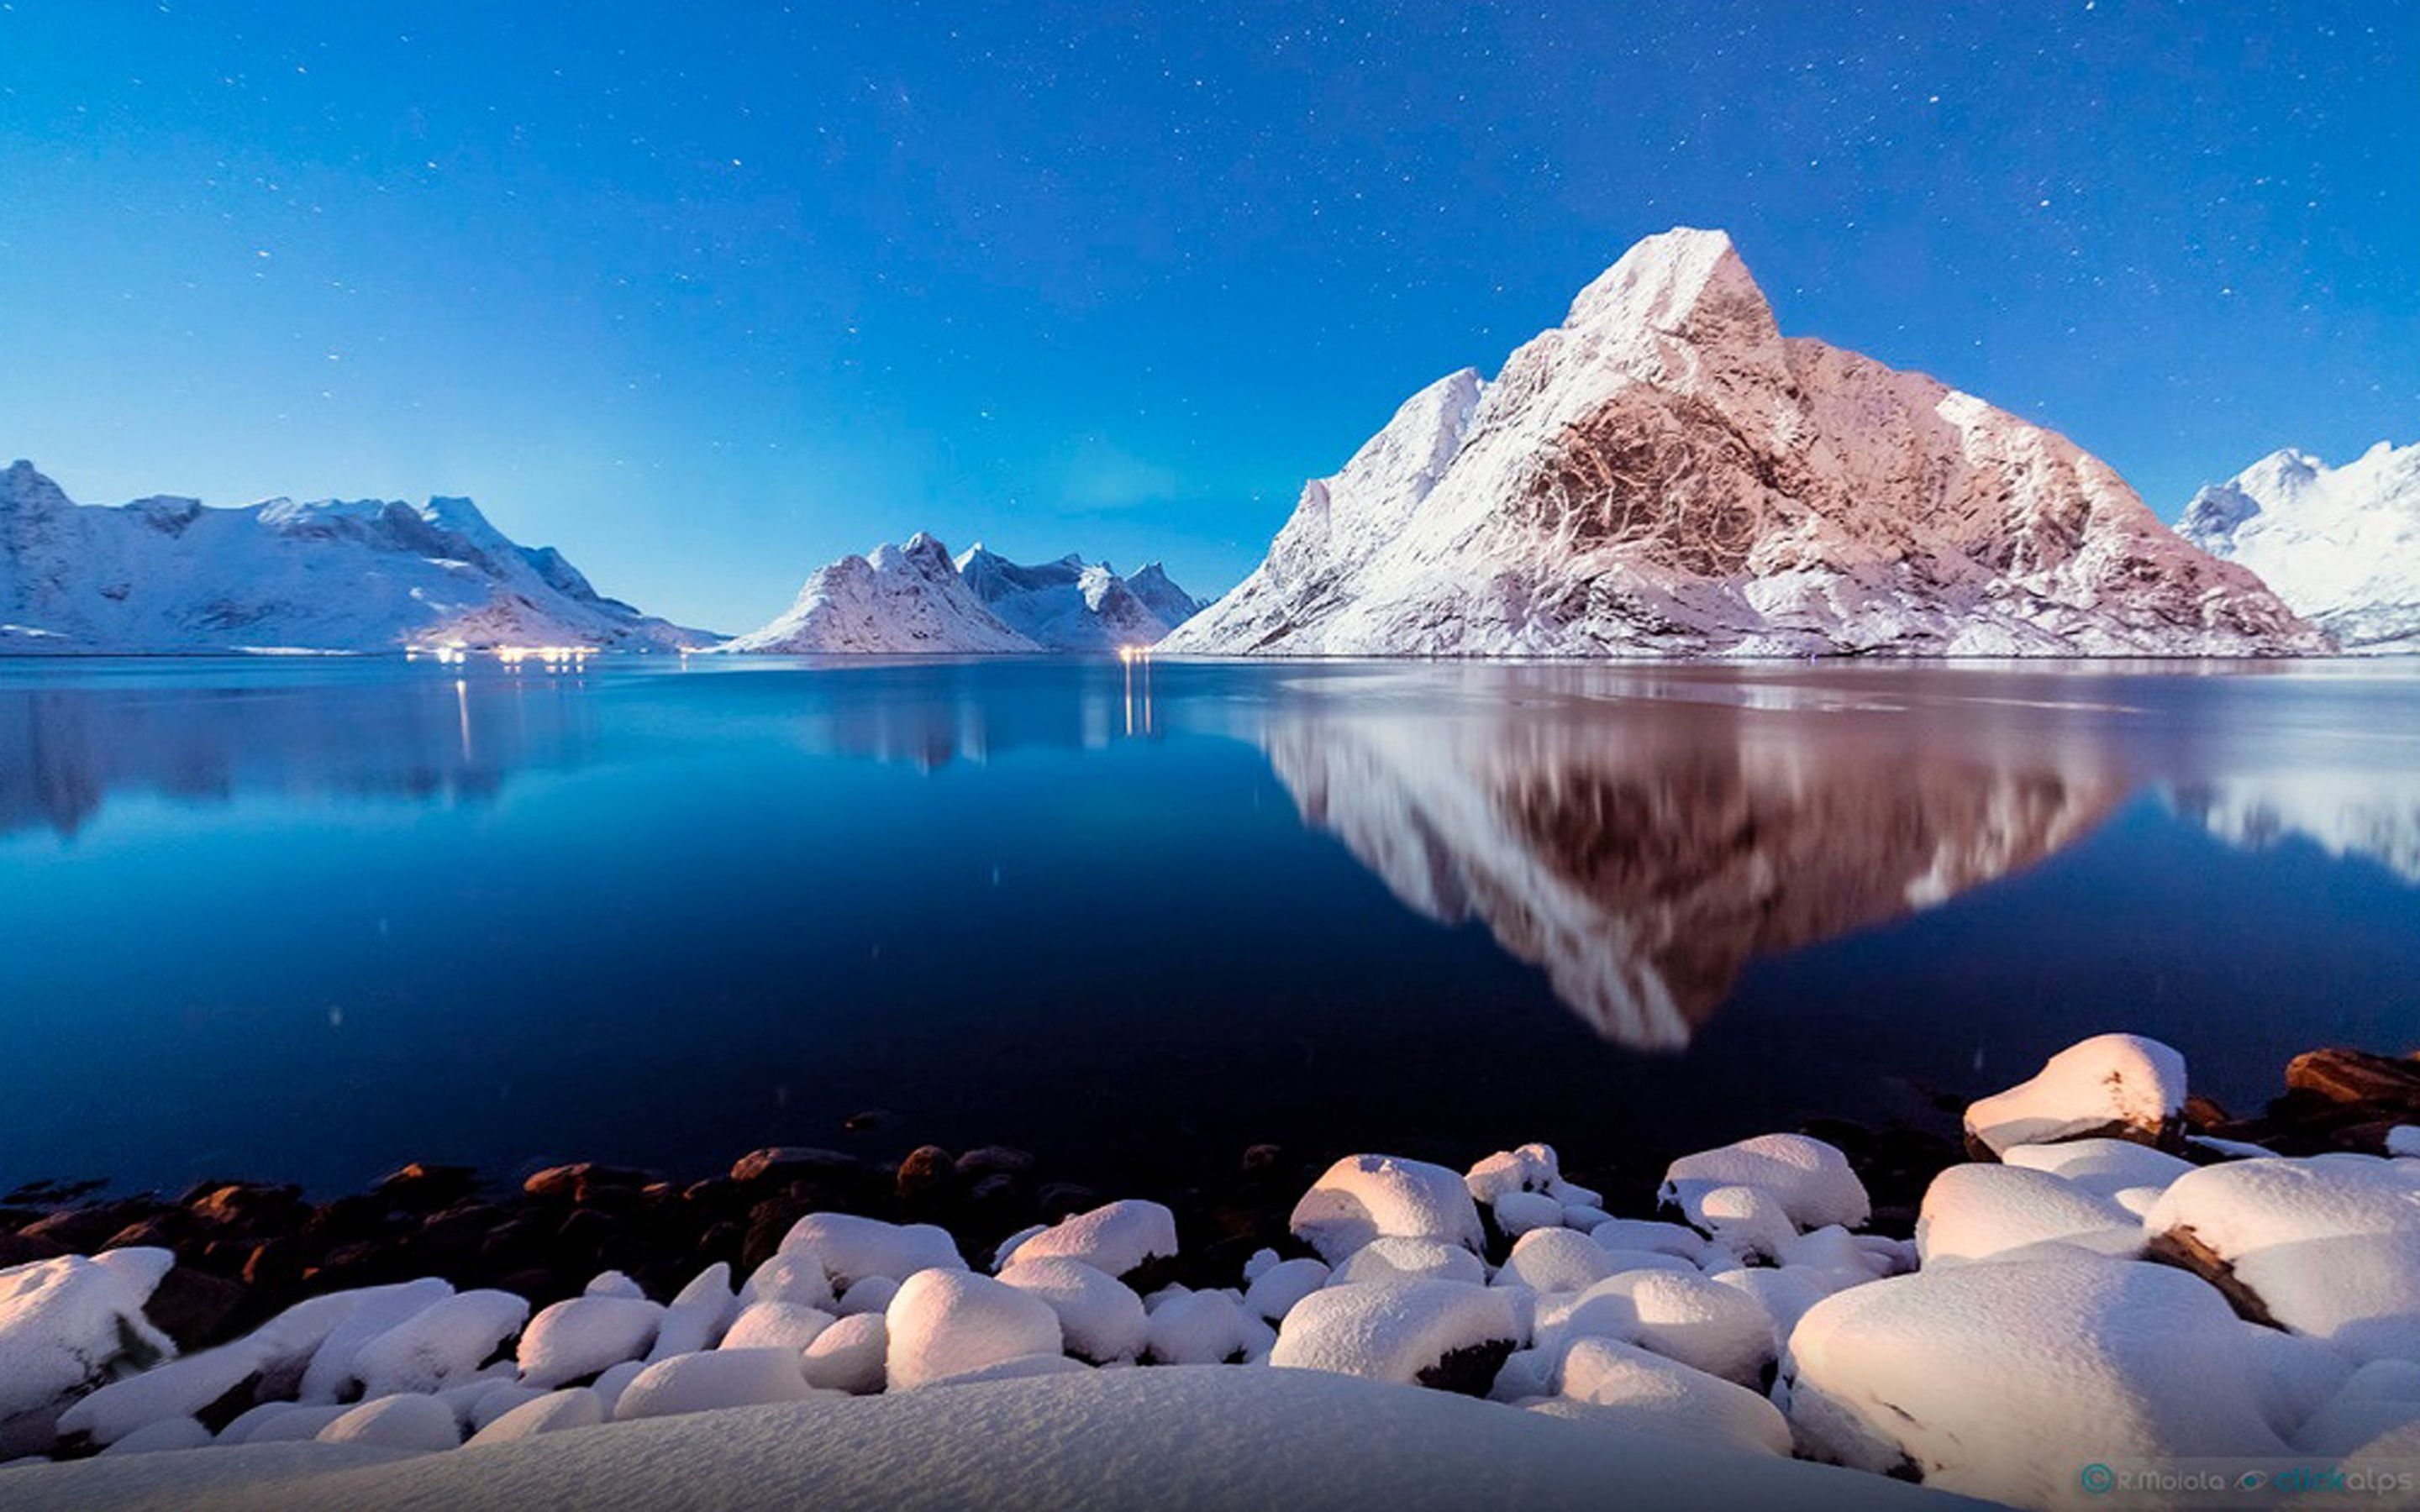 Winter Peaceful Lake Shore Stones Snow Mountains Blue Reflection In Water 2880x1800 Music Indieartis Water Reflections Cool Landscapes Wonders Of The World